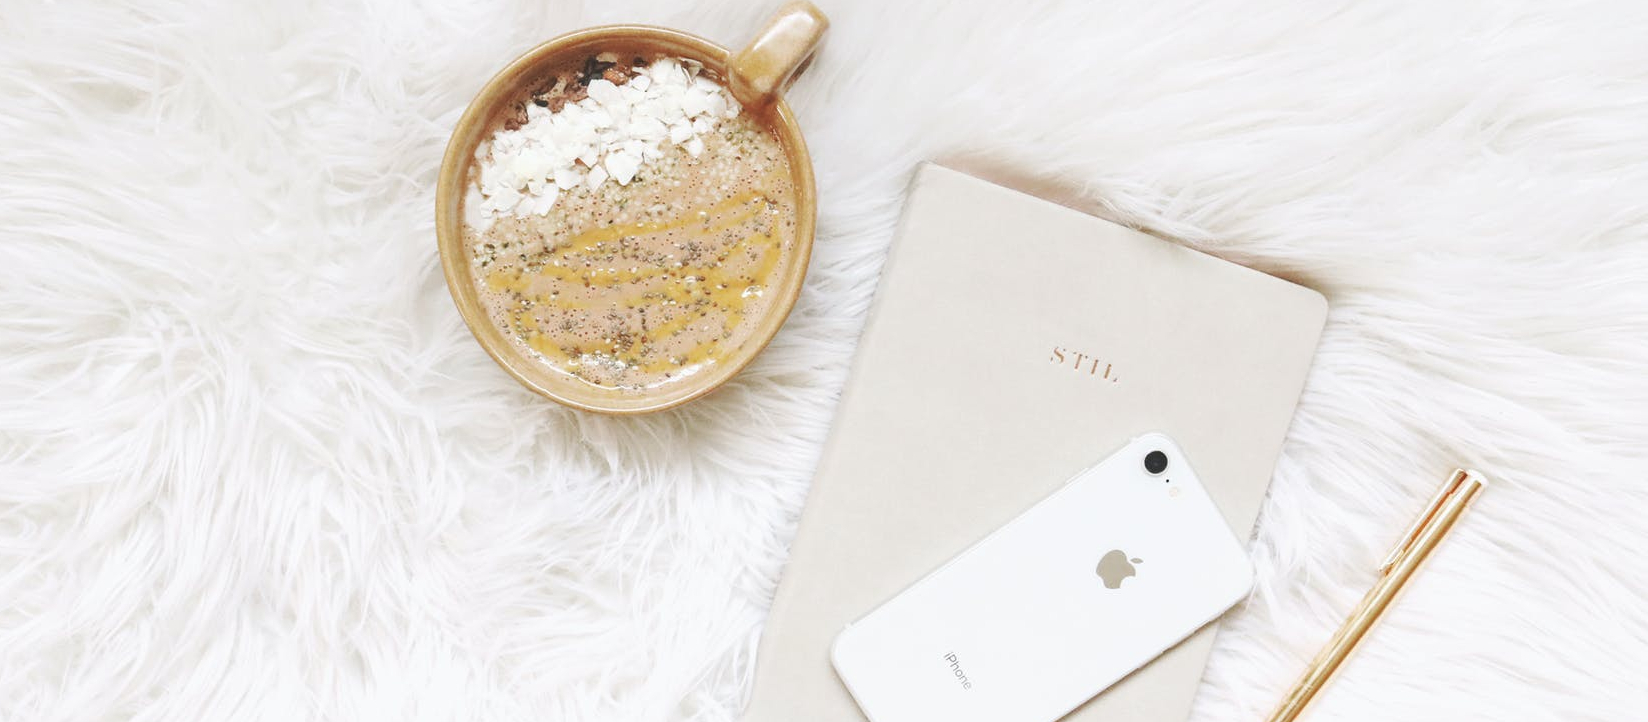 white iphone gold colored pen and round gold colored cup